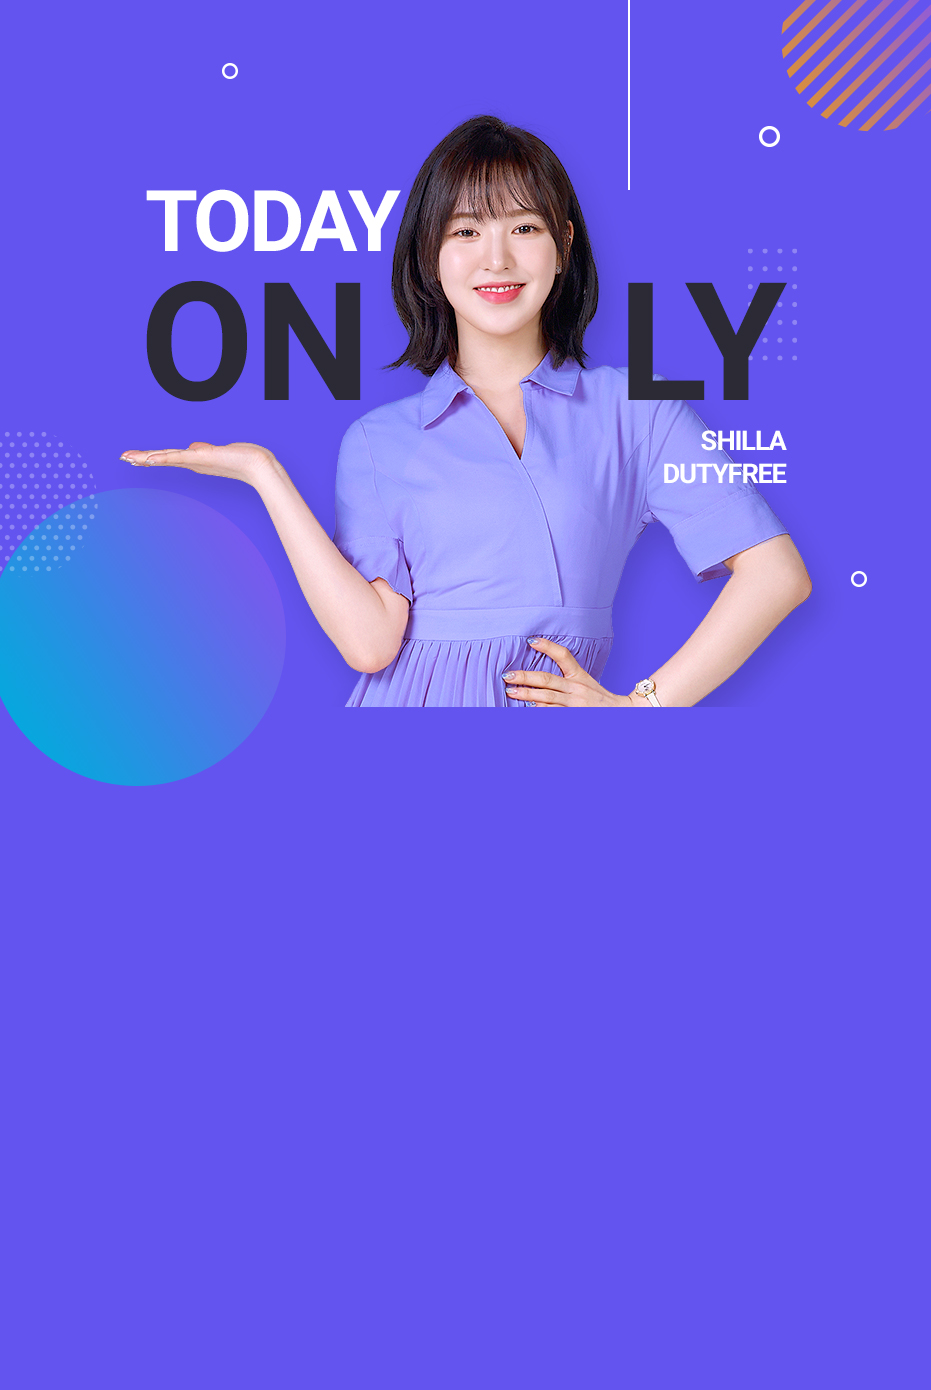 TODAY ONLY SHILLA DUTYFREE